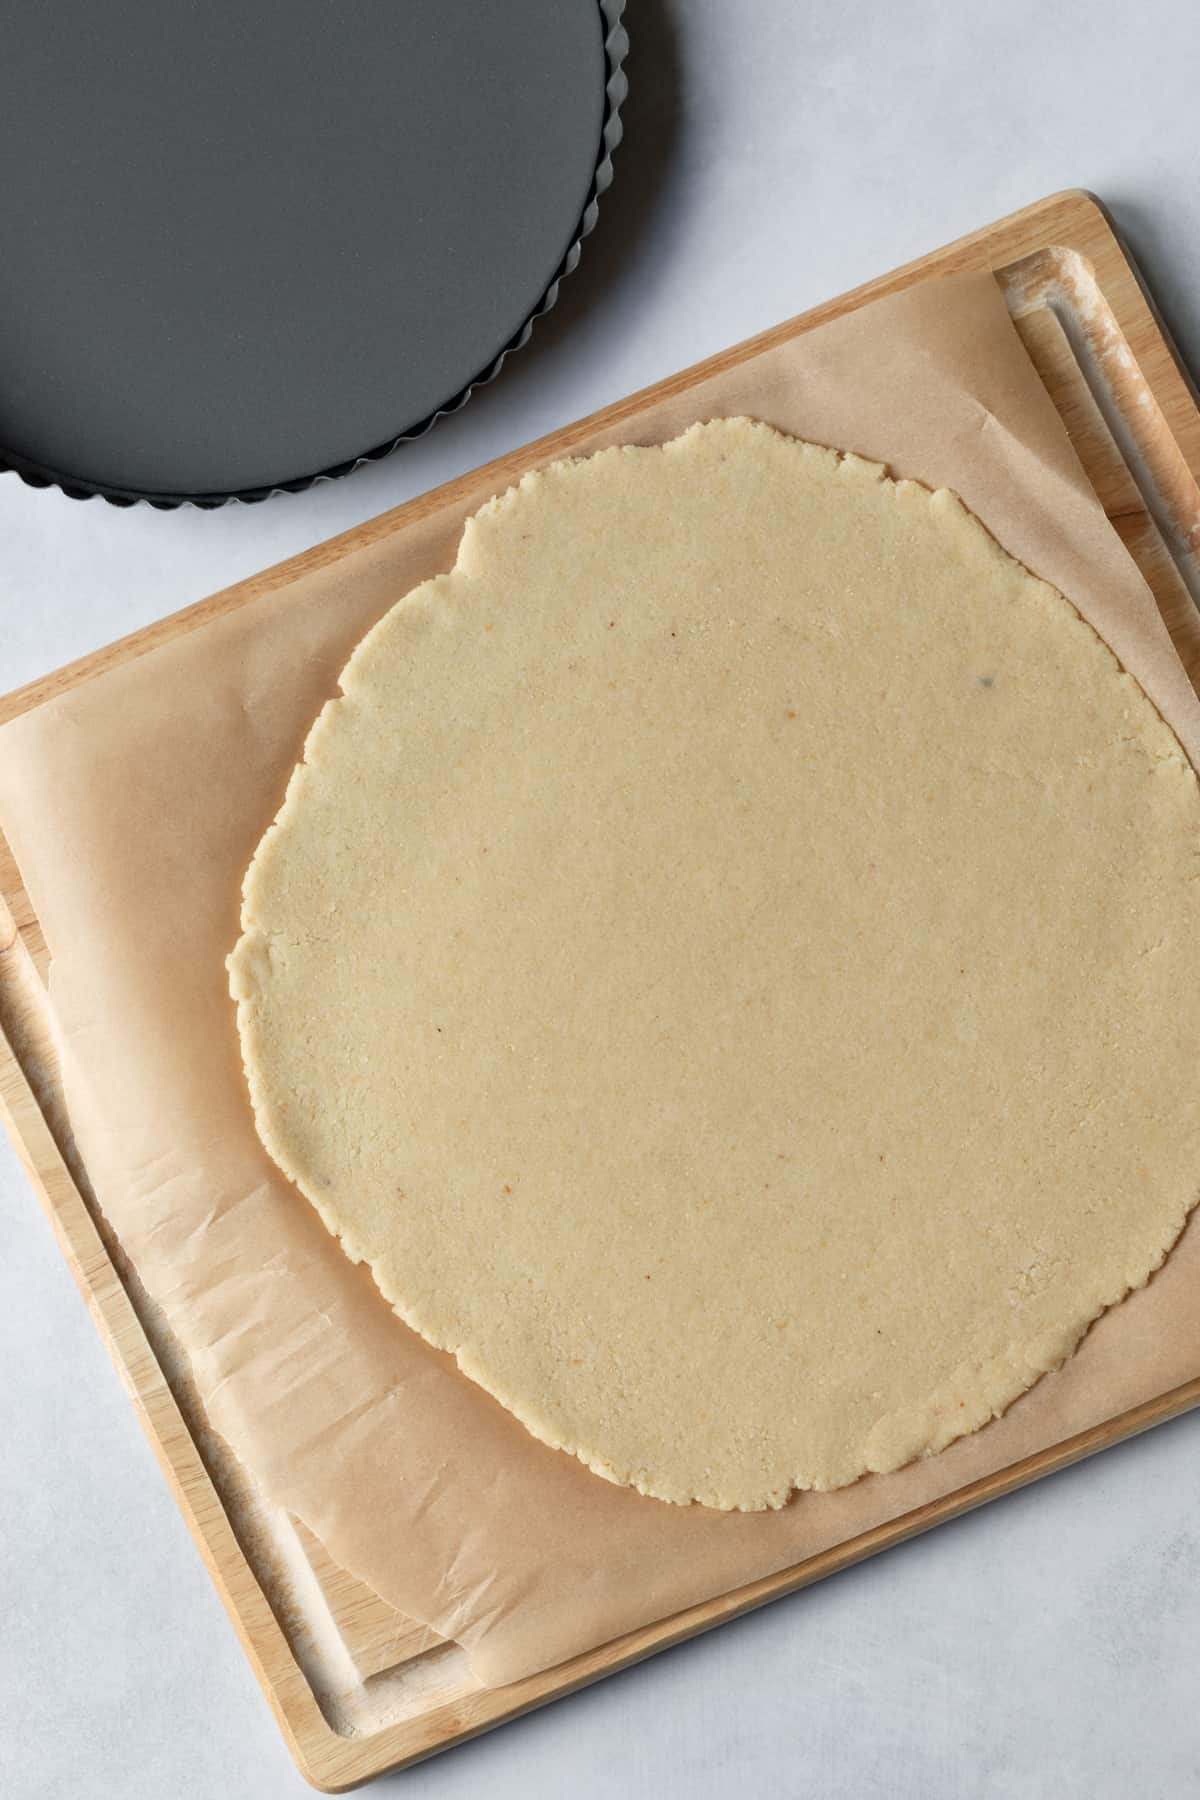 rolled out dough on parchment